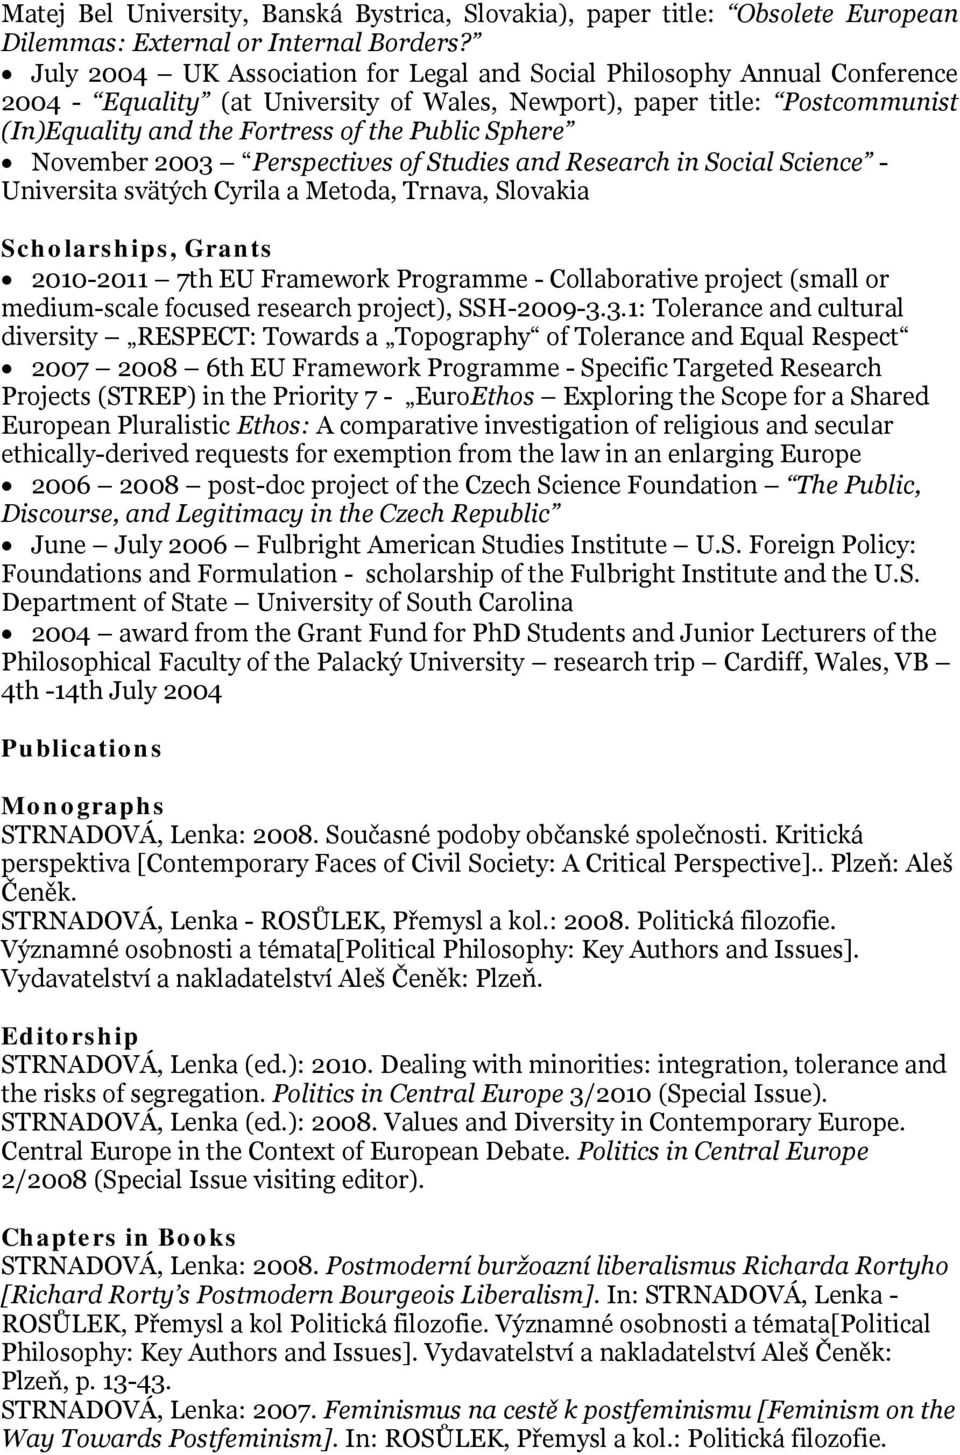 Sphere November 2003 Perspectives of Studies and Research in Social Science - Universita svätých Cyrila a Metoda, Trnava, Slovakia Scholarships, Grants 2010-2011 7th EU Framework Programme -